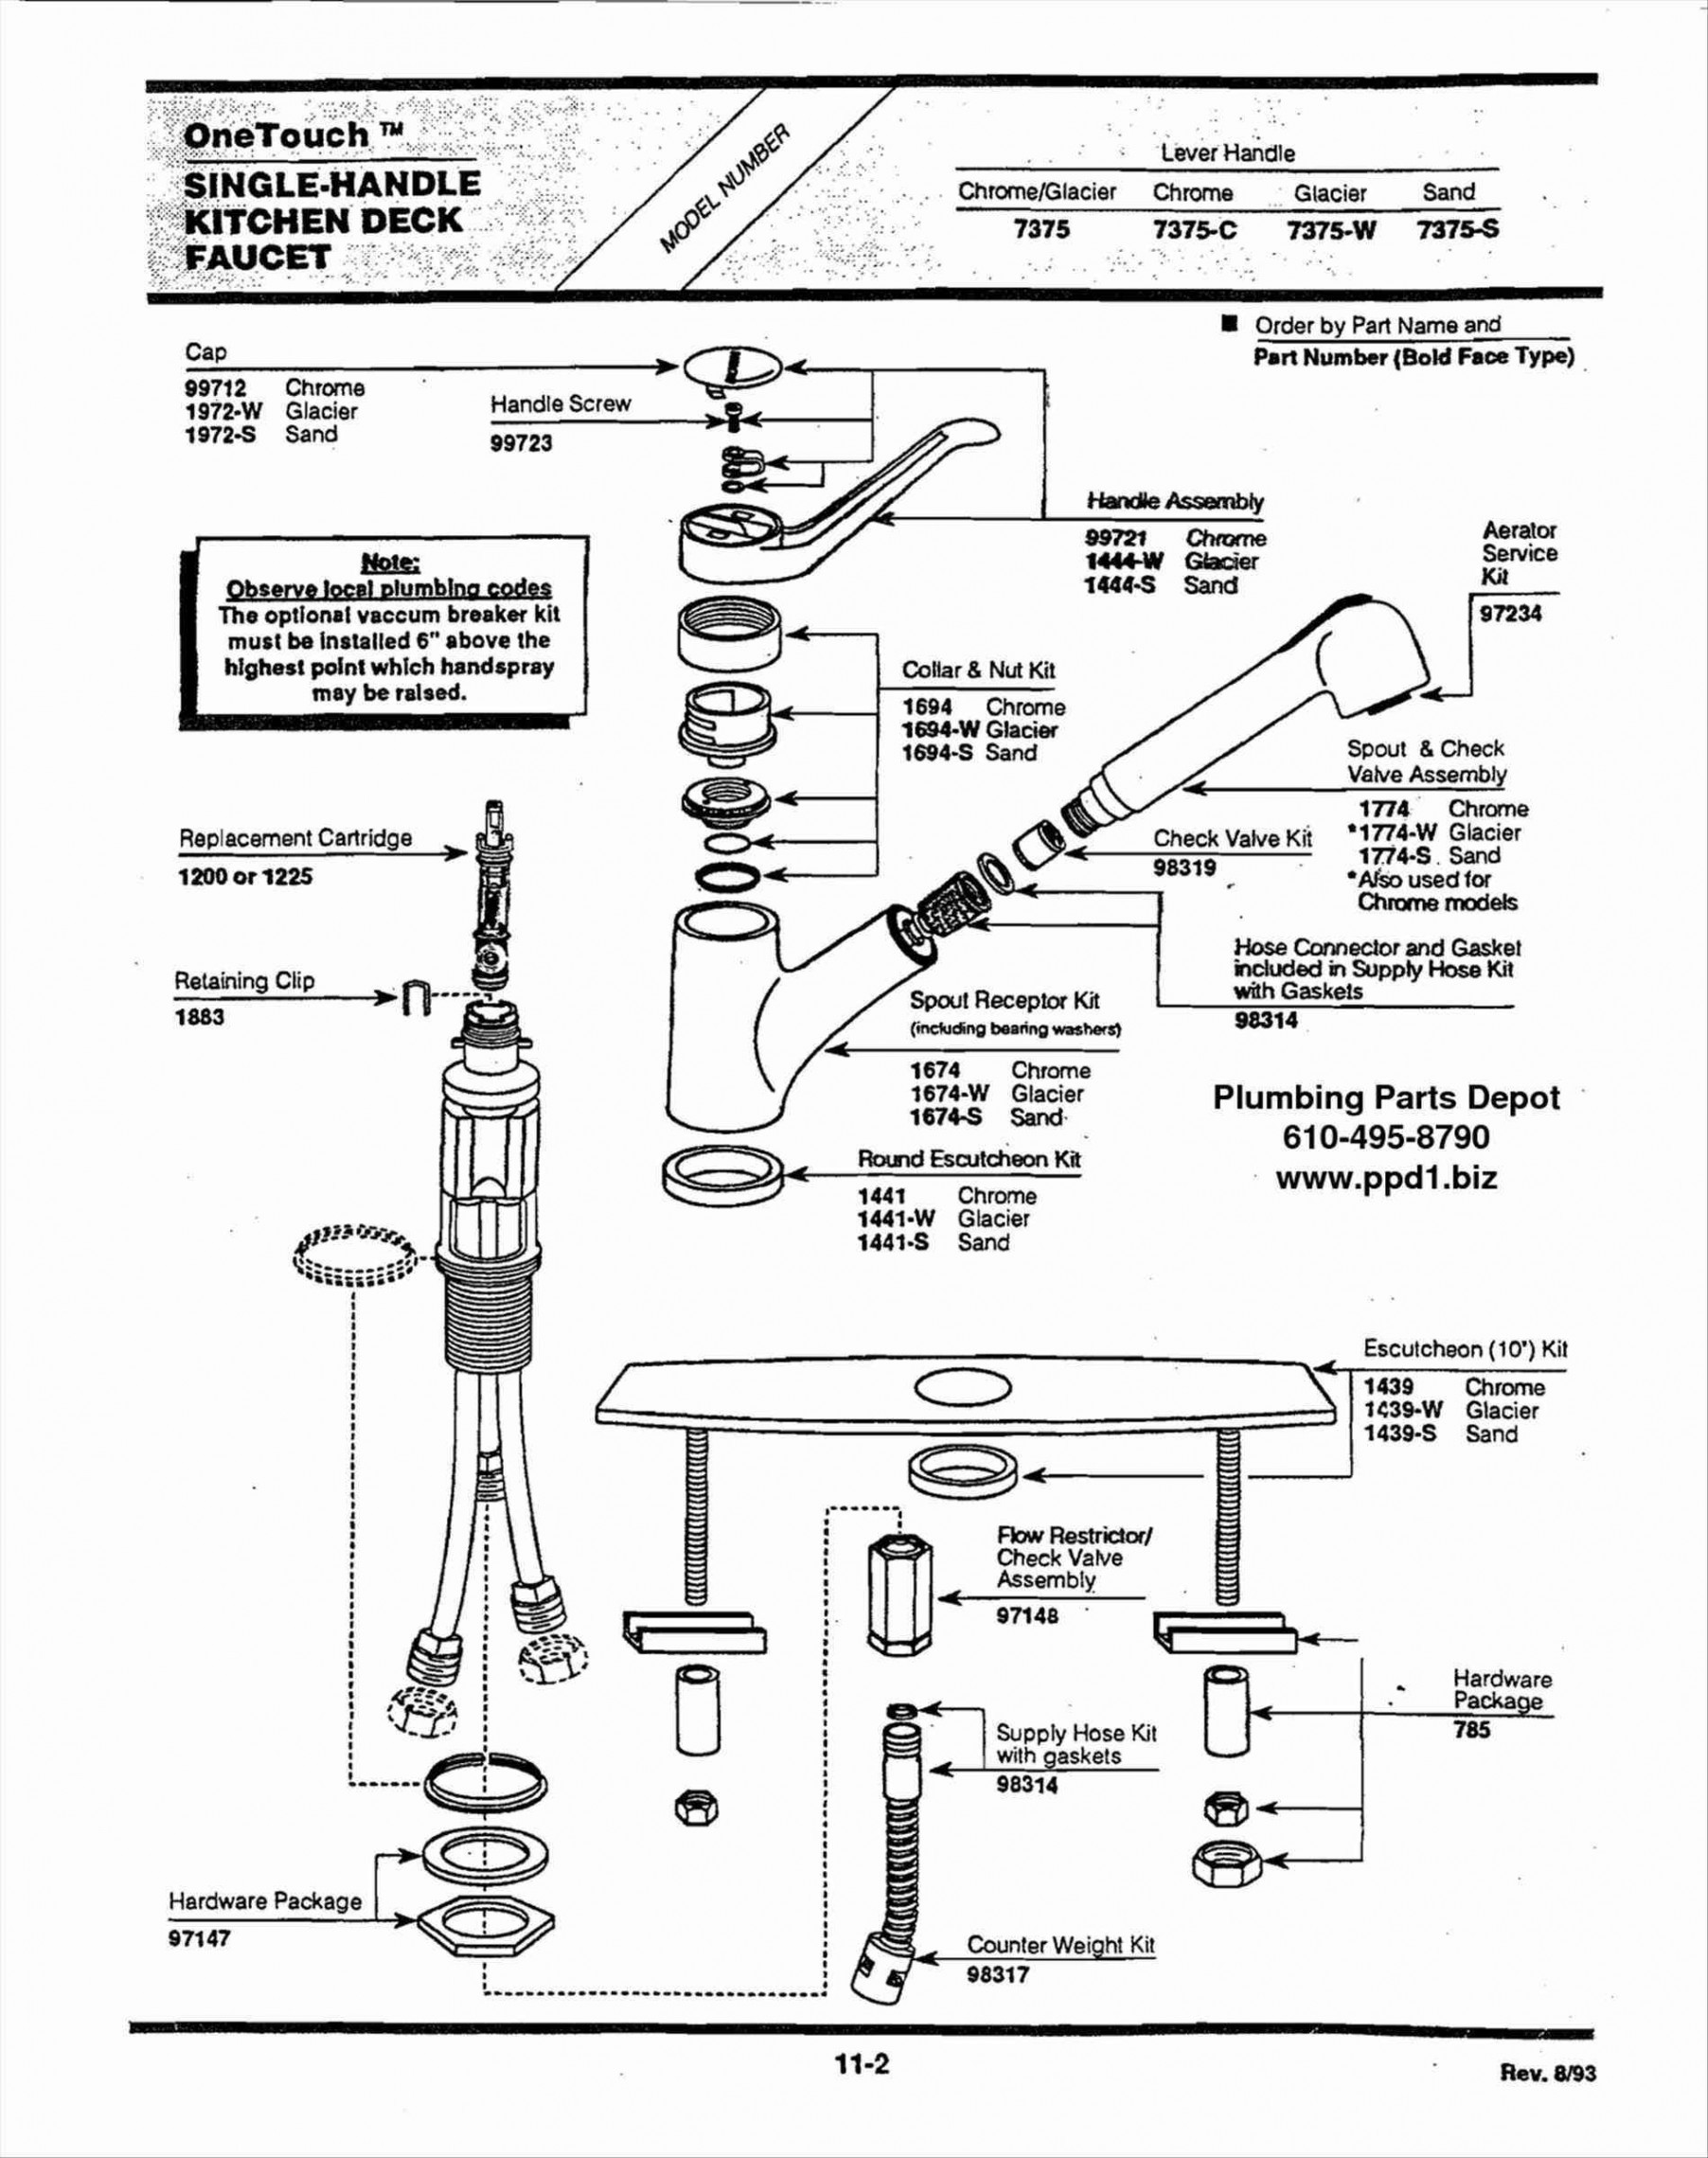 American Standard toilet Parts Diagram Faucet Outdoor Faucet Parts Diagram American Standard Kitchen Of American Standard toilet Parts Diagram